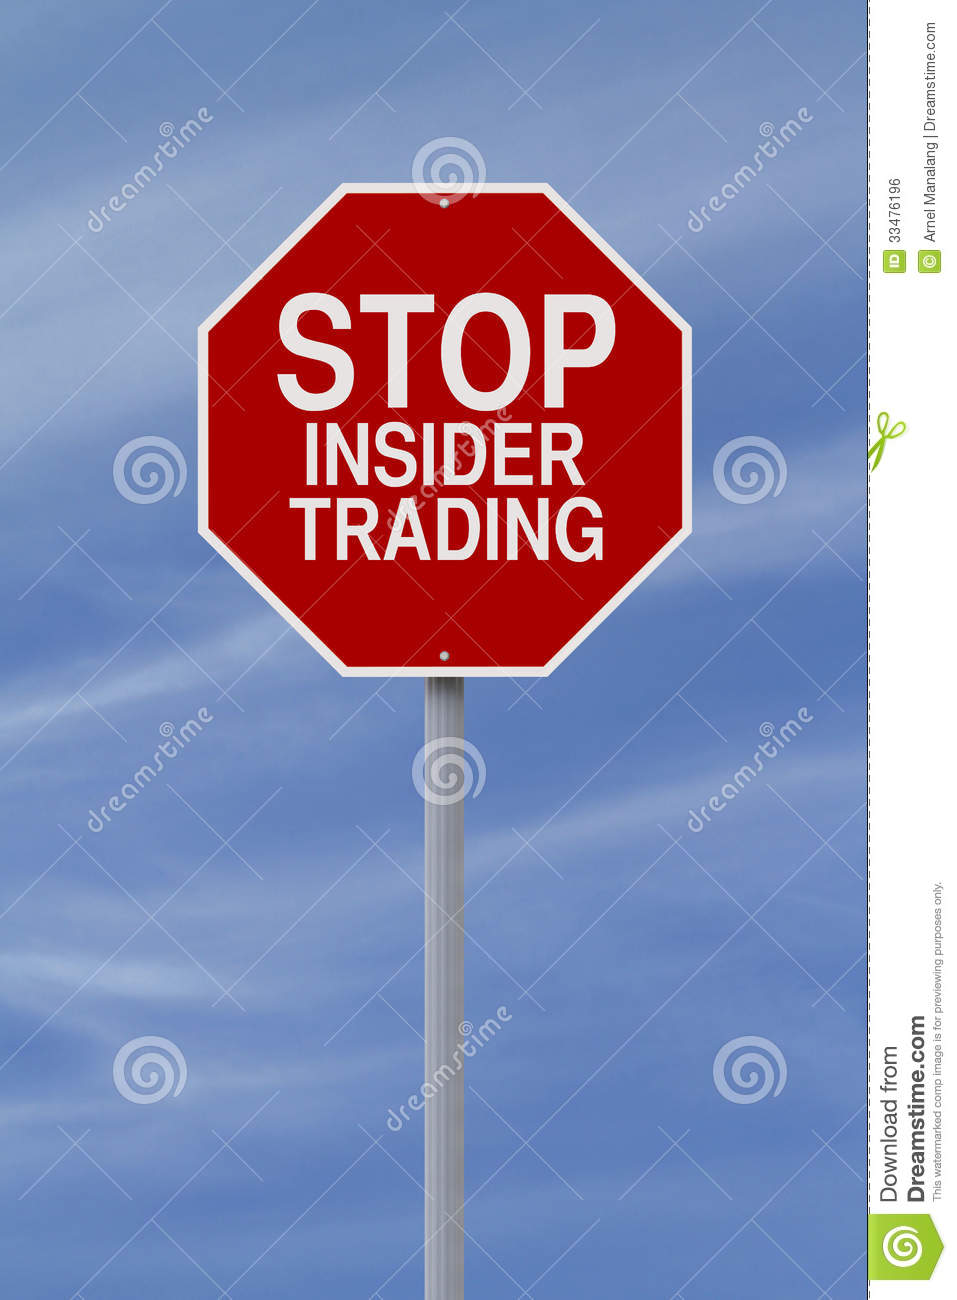 What time do stock options stop trading